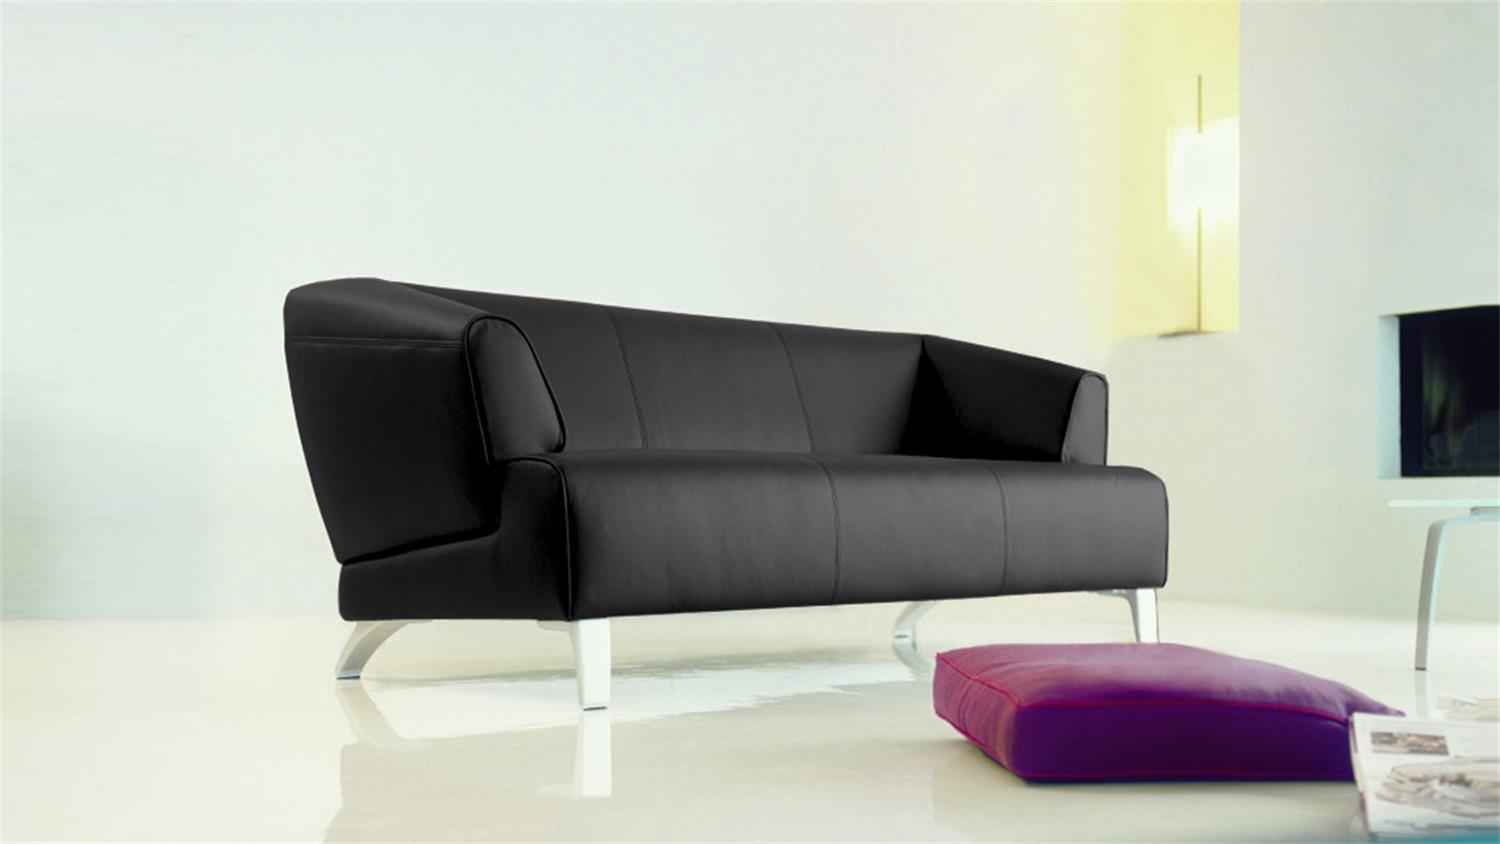 sofa rolf benz sob 2300 echtleder schwarz 2 sitzer 174 cm breit. Black Bedroom Furniture Sets. Home Design Ideas